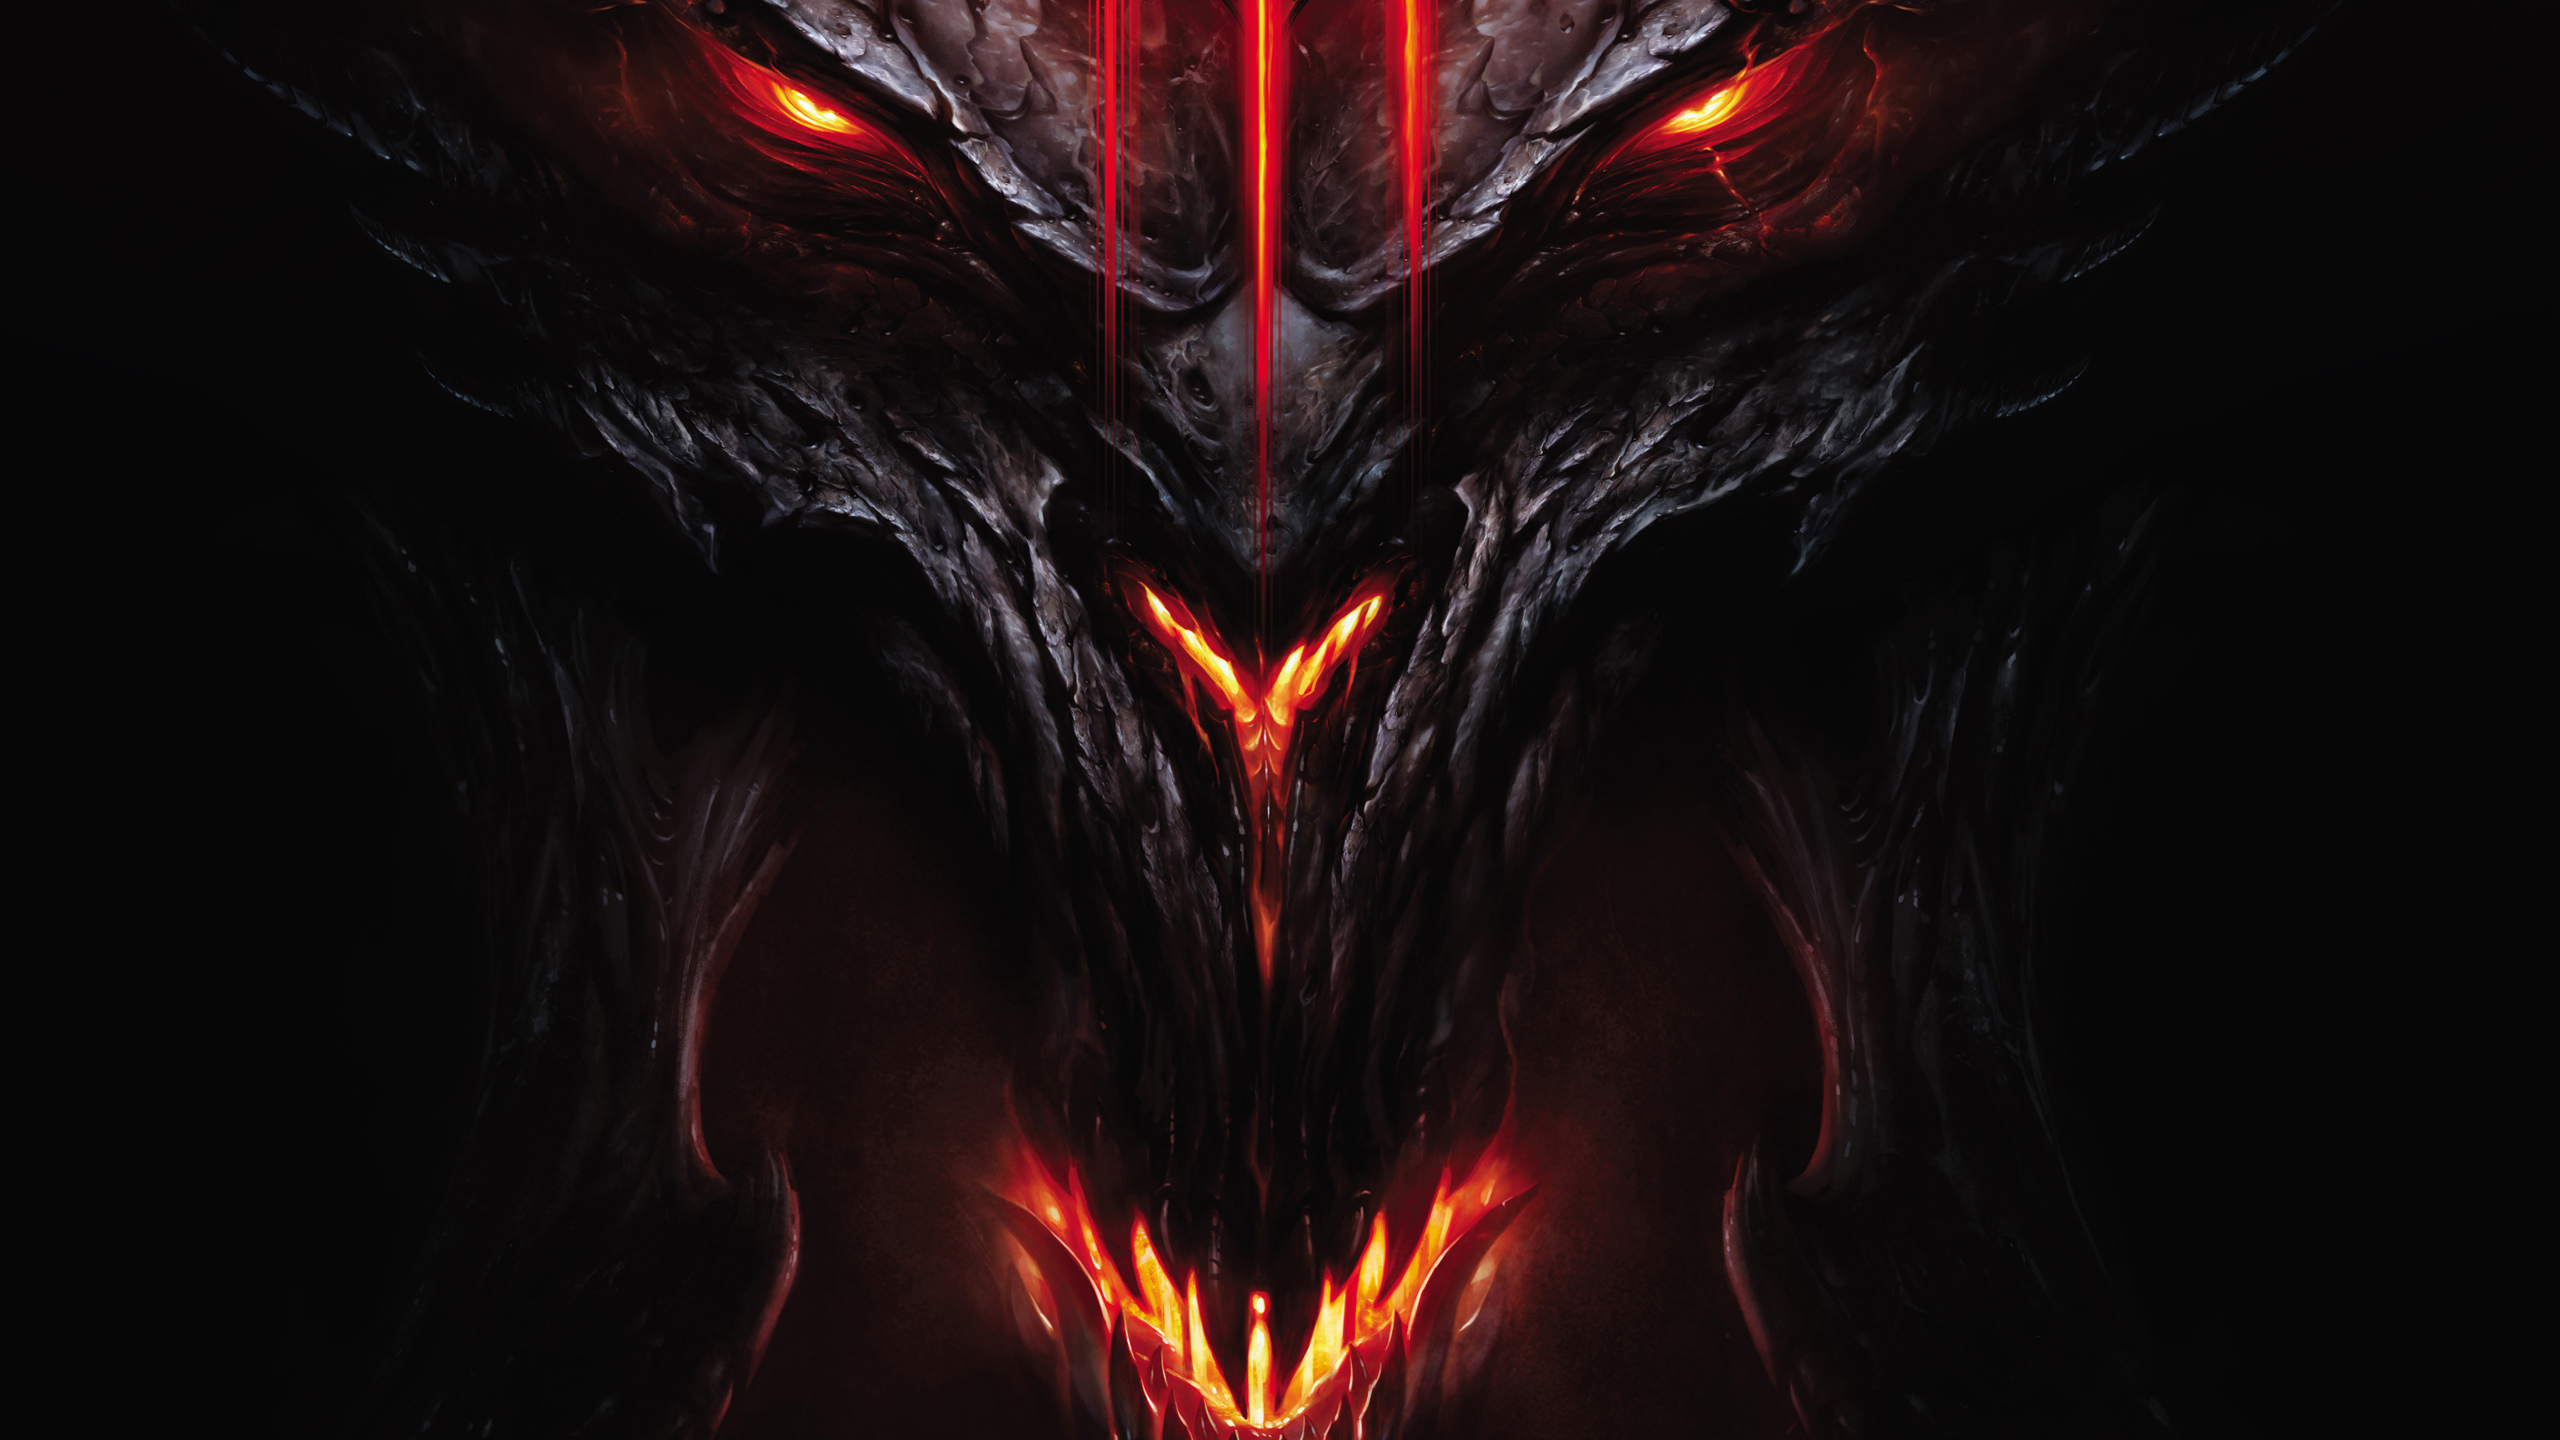 ghost and demon wallpapers free download hd latest new - HD2560×1440